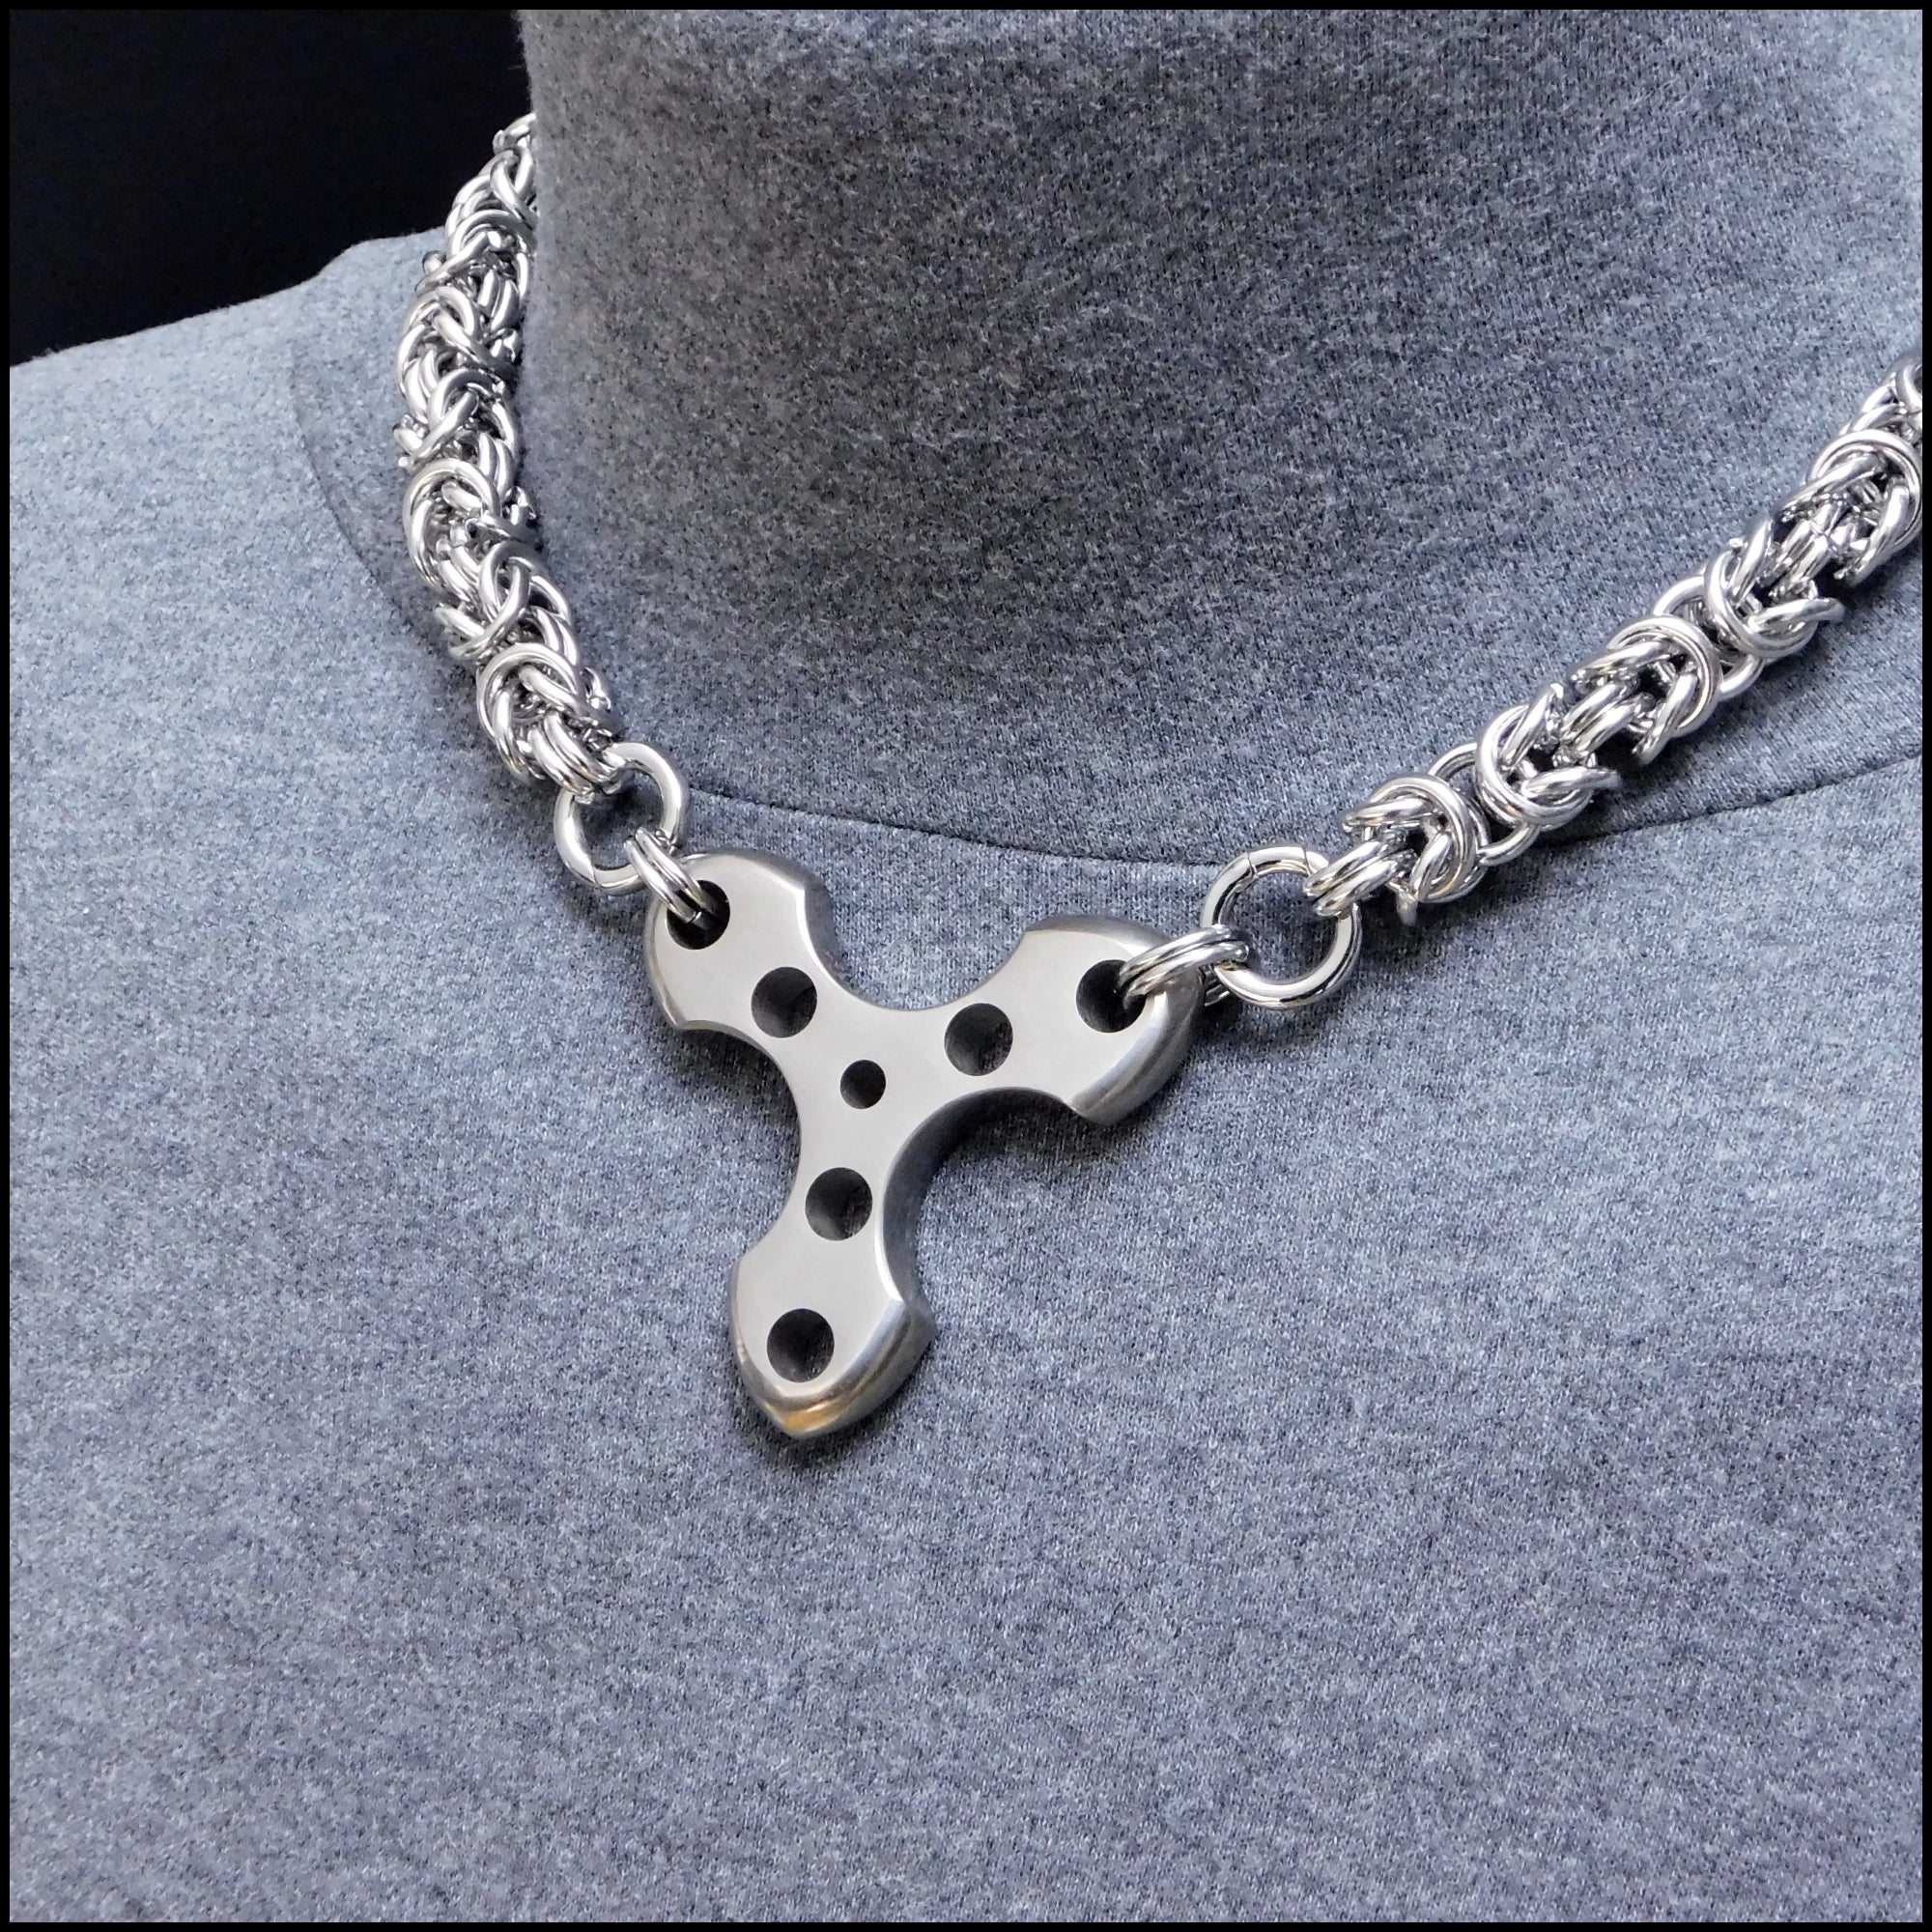 Techno Warrior Triangle Pendant on Heavy 11mm Chainmaille Necklace - Precision Made Stainless Steel